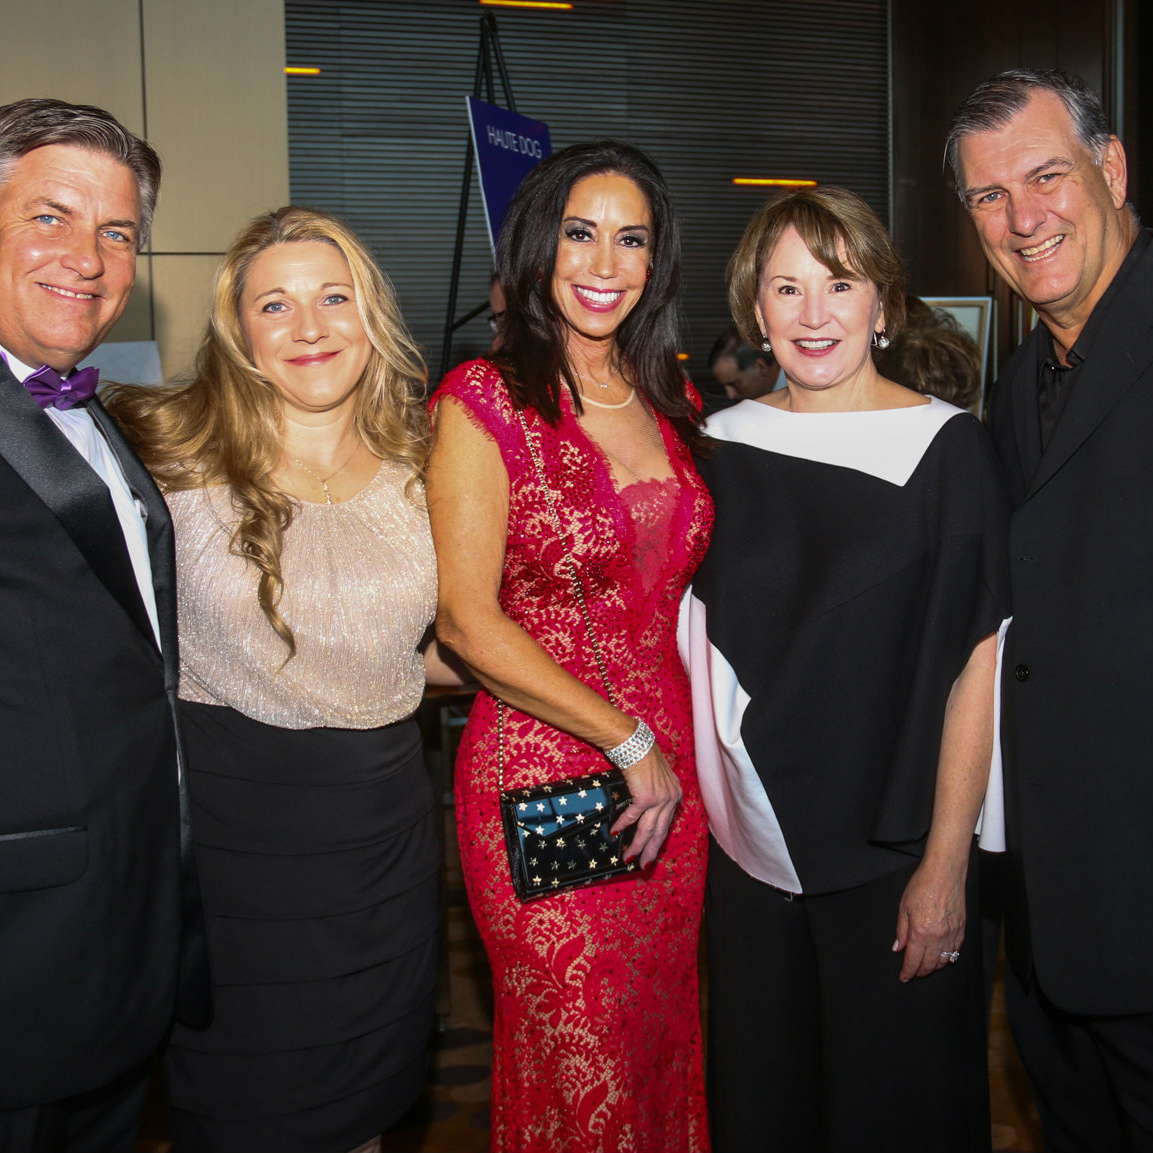 James Bias, Natalie Bias, Jocelyn White, Micki Rawlings, Mayor Mike Rawlings